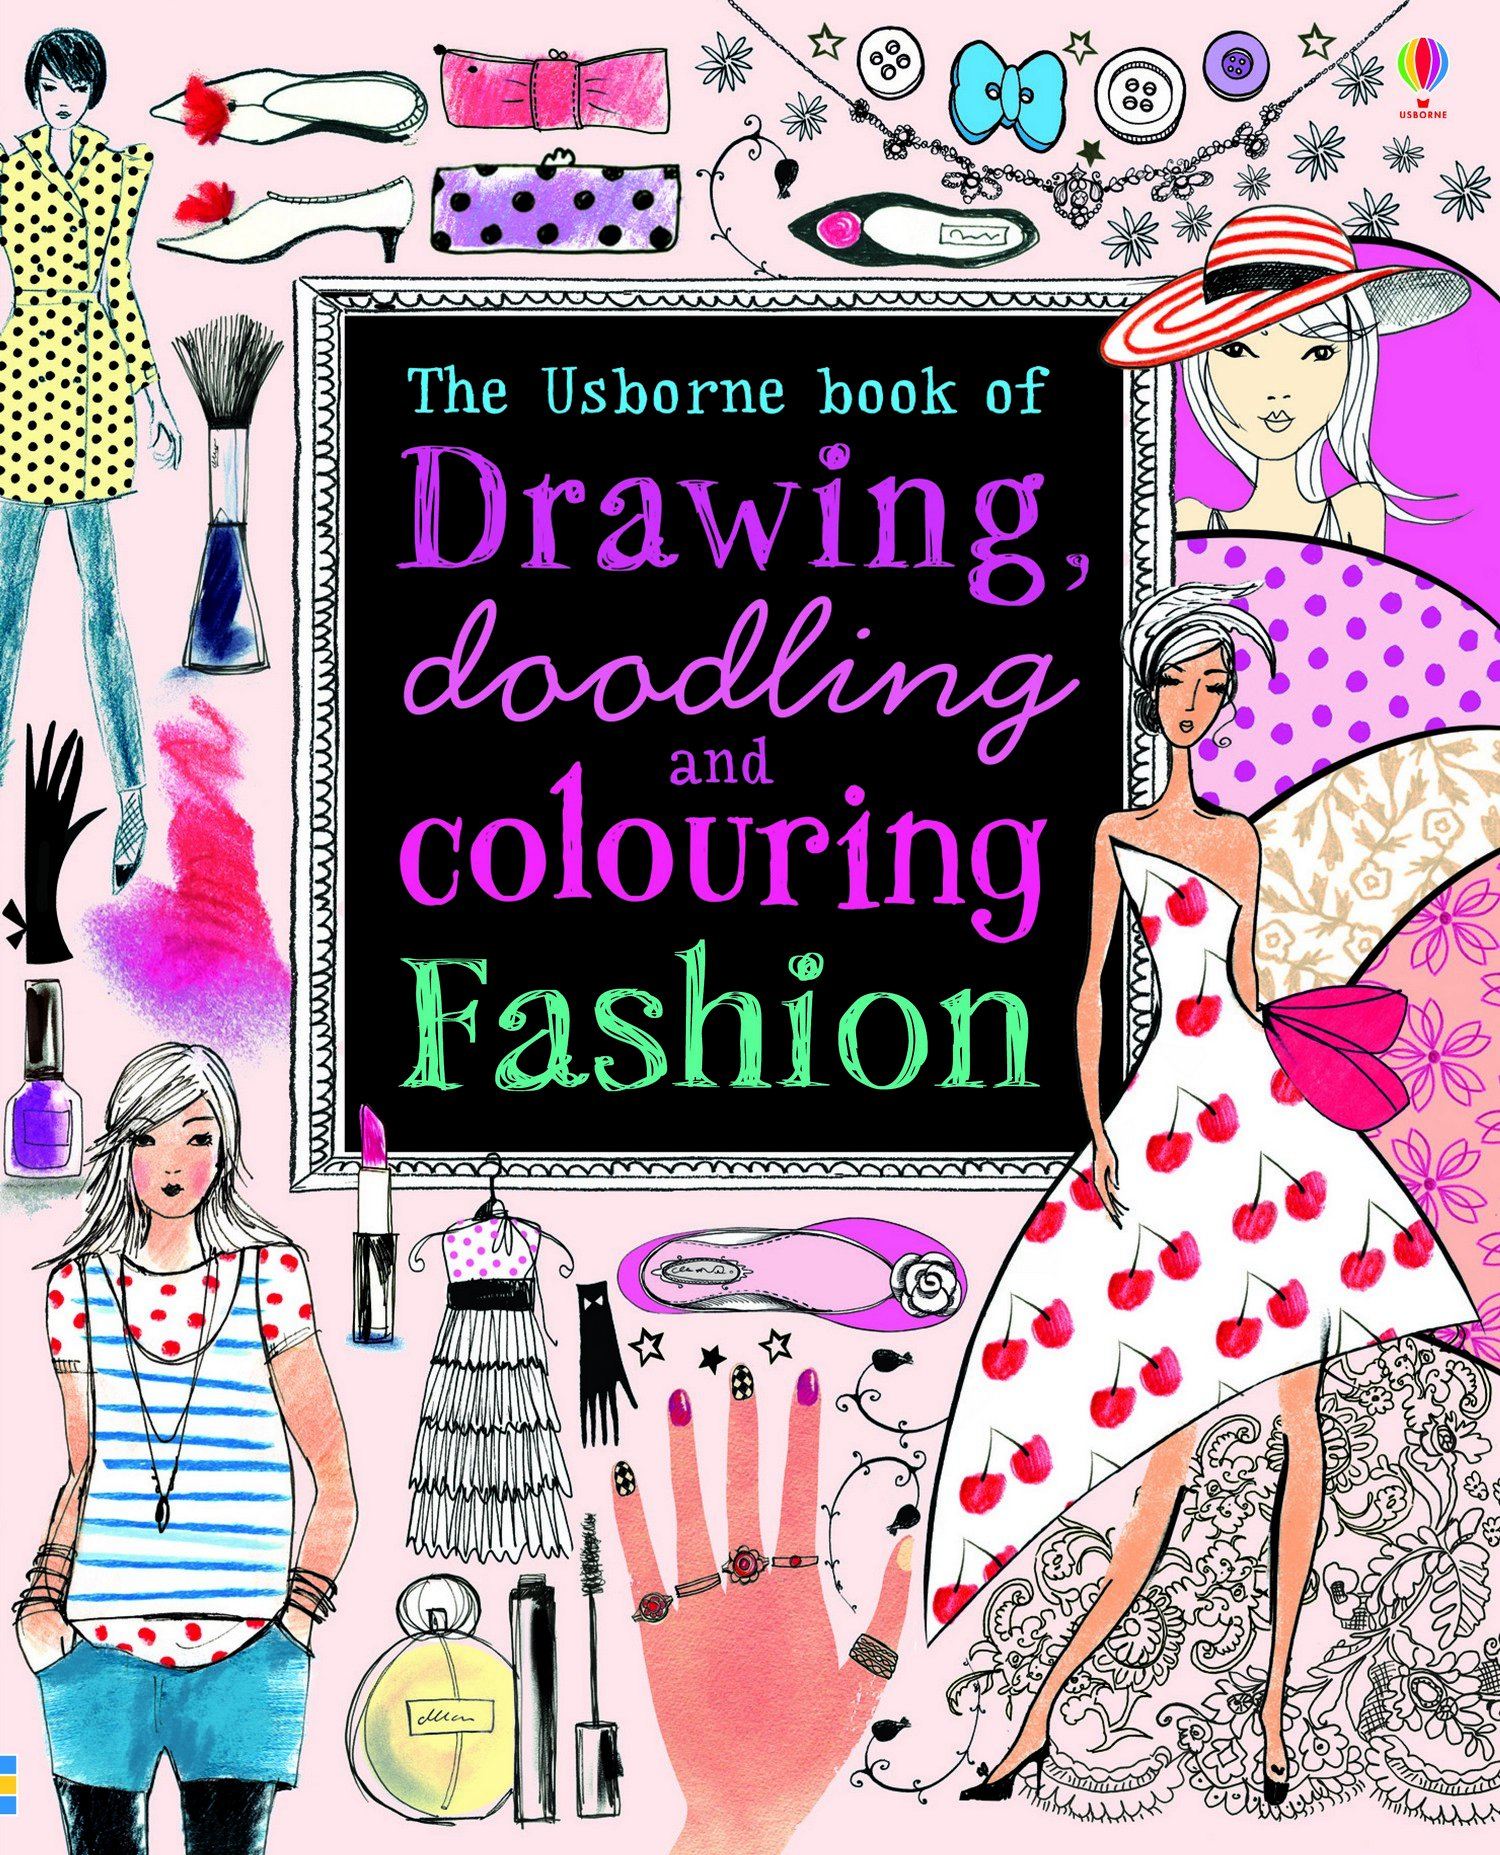 Unusual Coloring Book Wallpaper Tall Coloring Book App Square Bulk Coloring Books Animal Coloring Book Young Animal Coloring Books SoftBig Coloring Books Drawing, Doodling \u0026 Colouring: Fashion (Usborne Drawing, Doodling ..